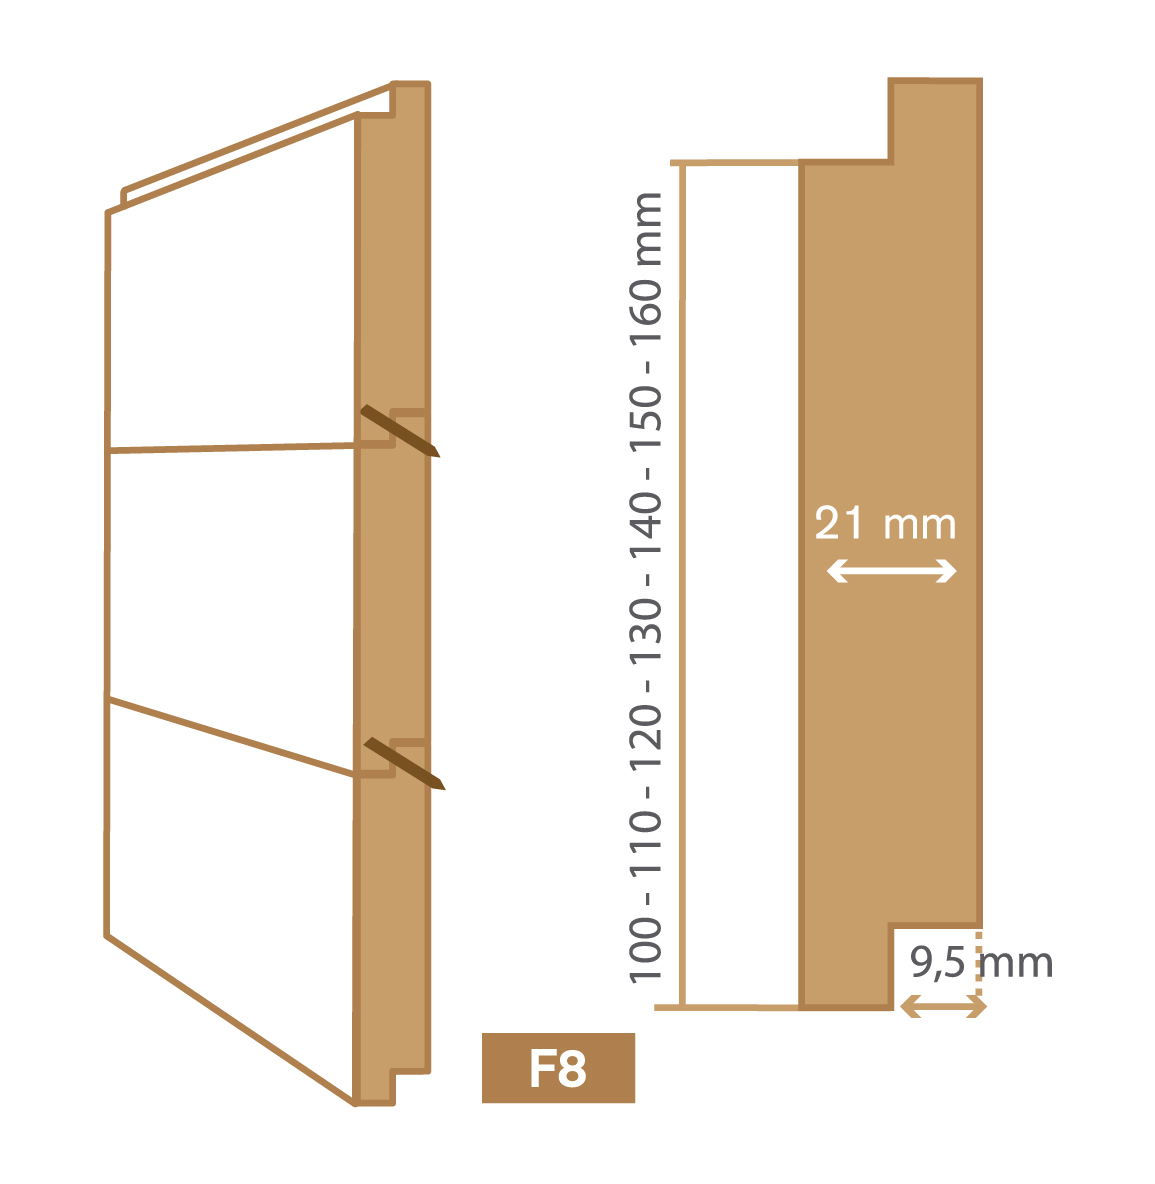 wooden cladding f8 type